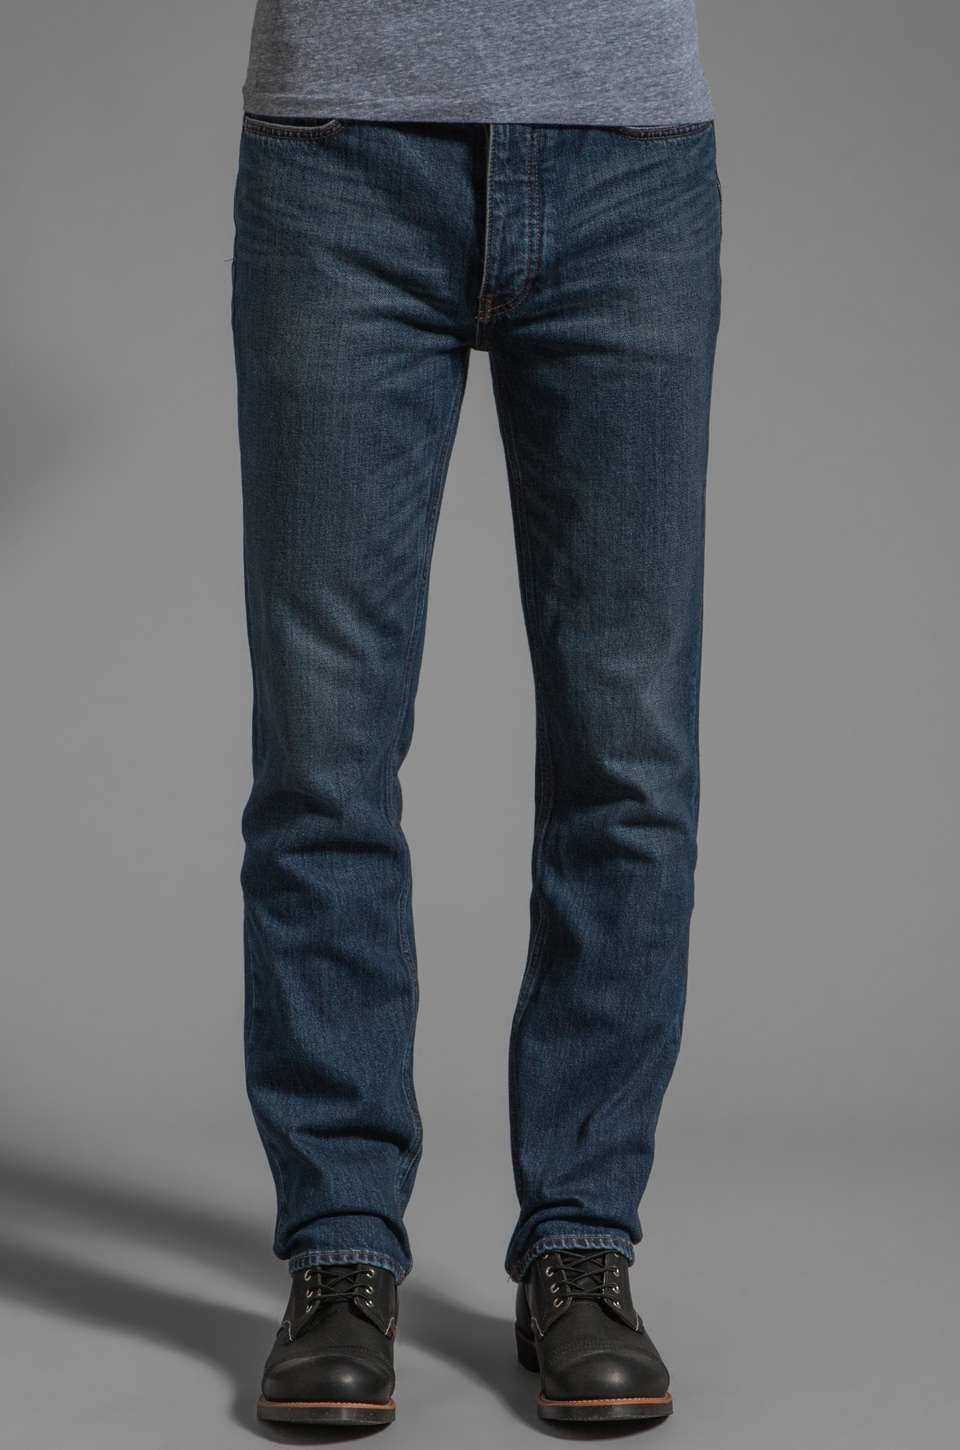 BLK DNM Jeans 9 32 Inseam in Duane Blue